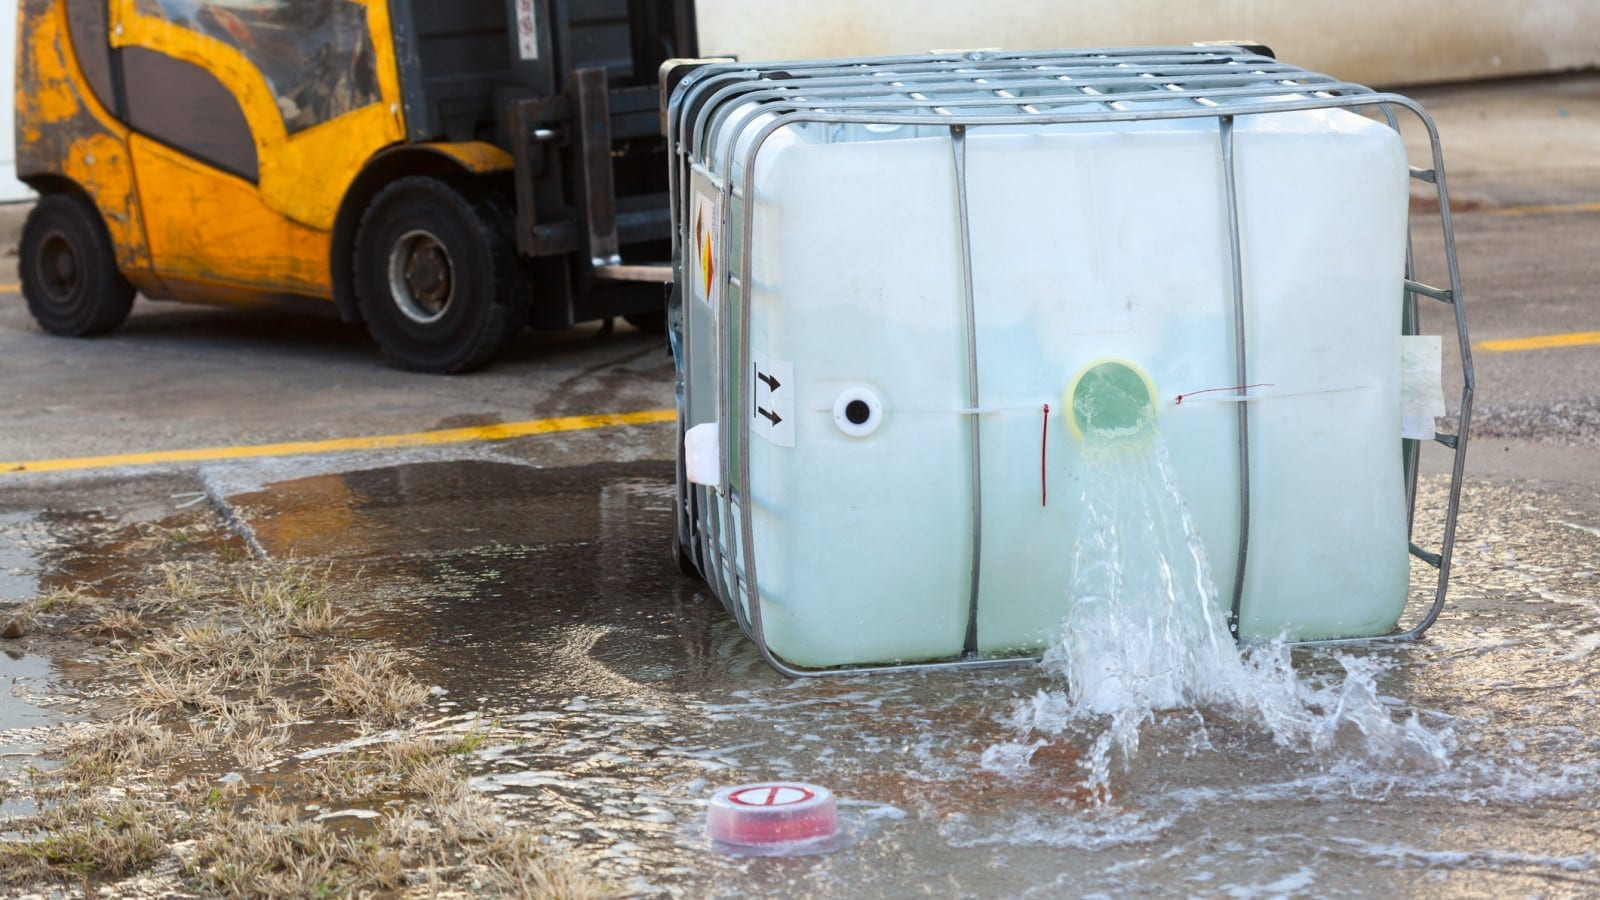 Dangerous Chemicals Spilling From Container Stock Photo